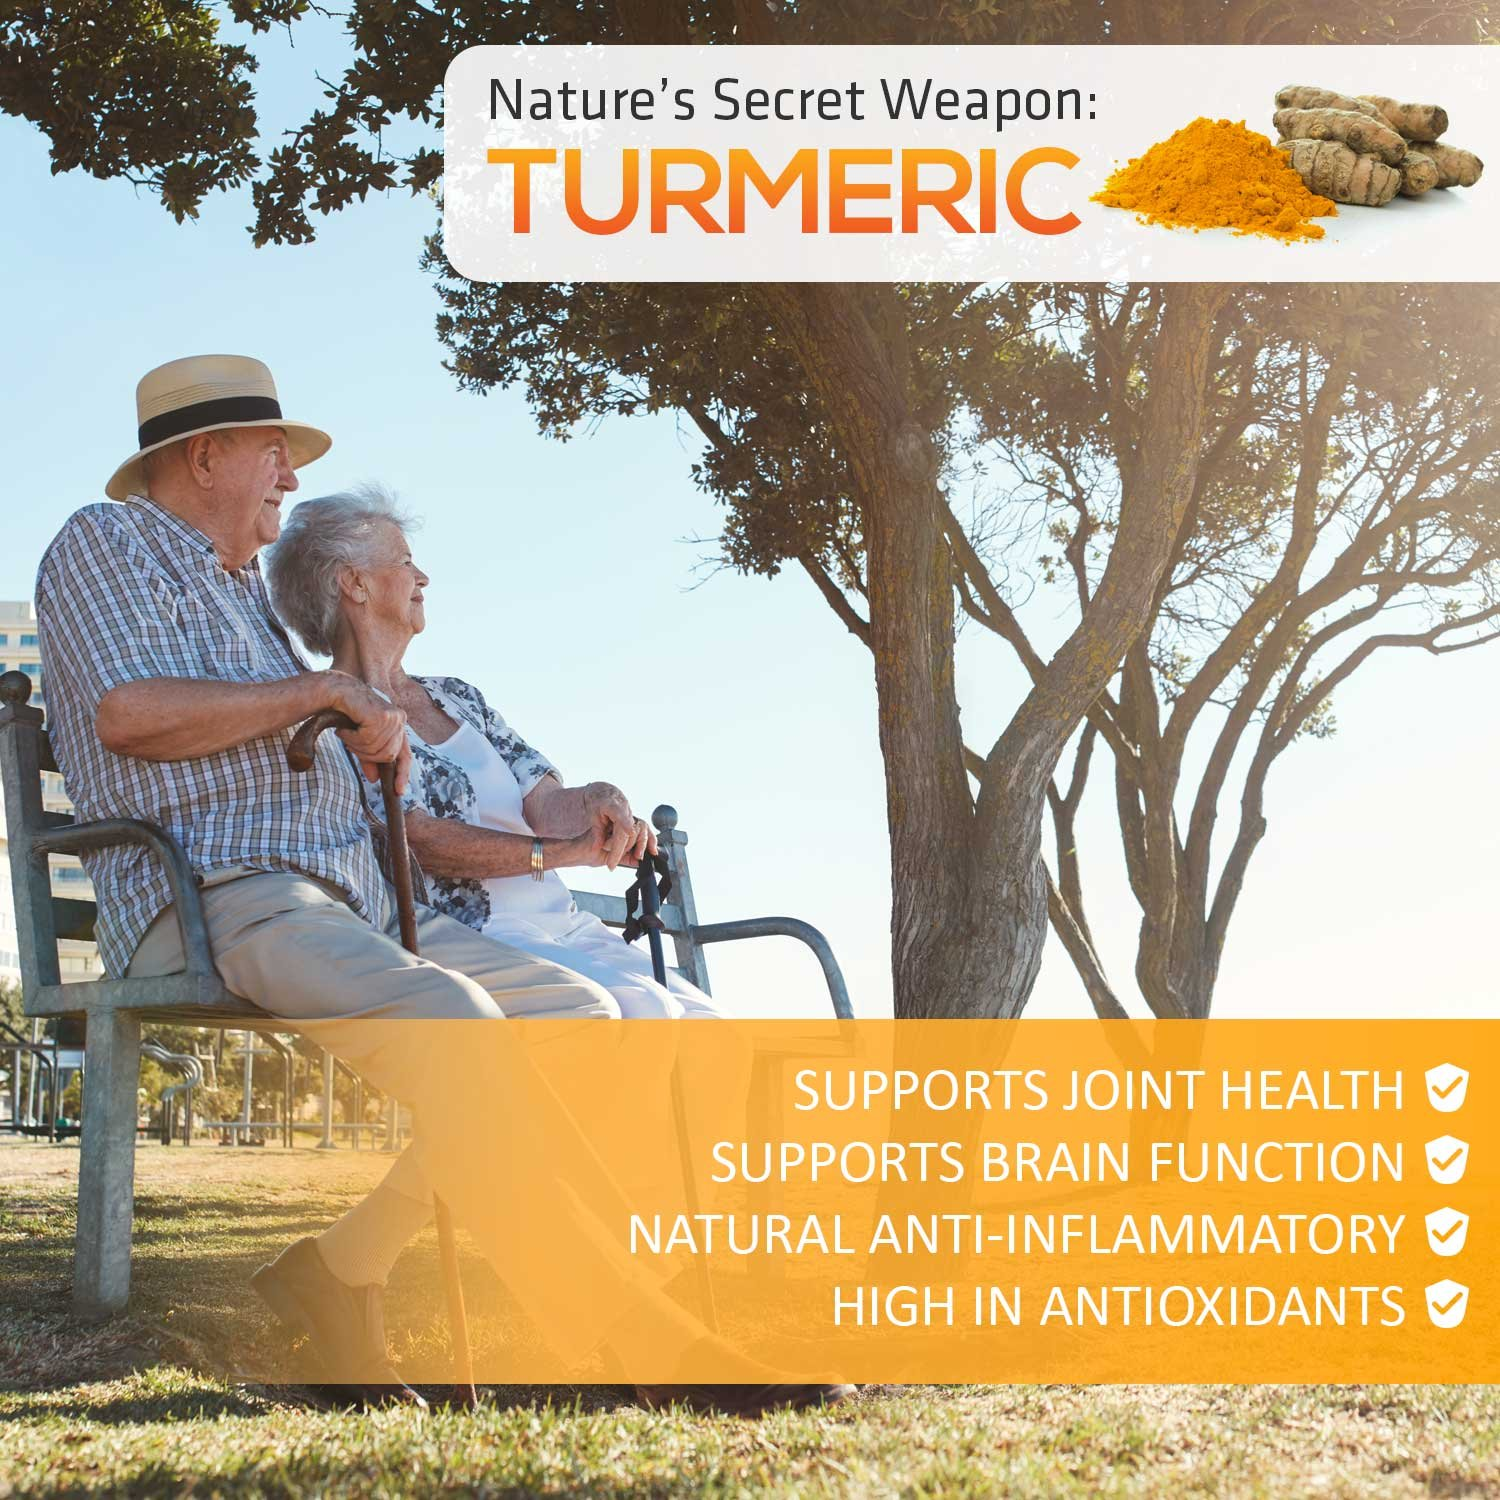 Turmeric Curcumin Max Potency 95% Curcuminoids 1950mg with Bioperine Black Pepper for Best Absorption, Anti-Inflammatory Joint Relief, Turmeric Supplement Pills by Natures Nutrition - 180 Capsules by Nature's Nutrition (Image #4)